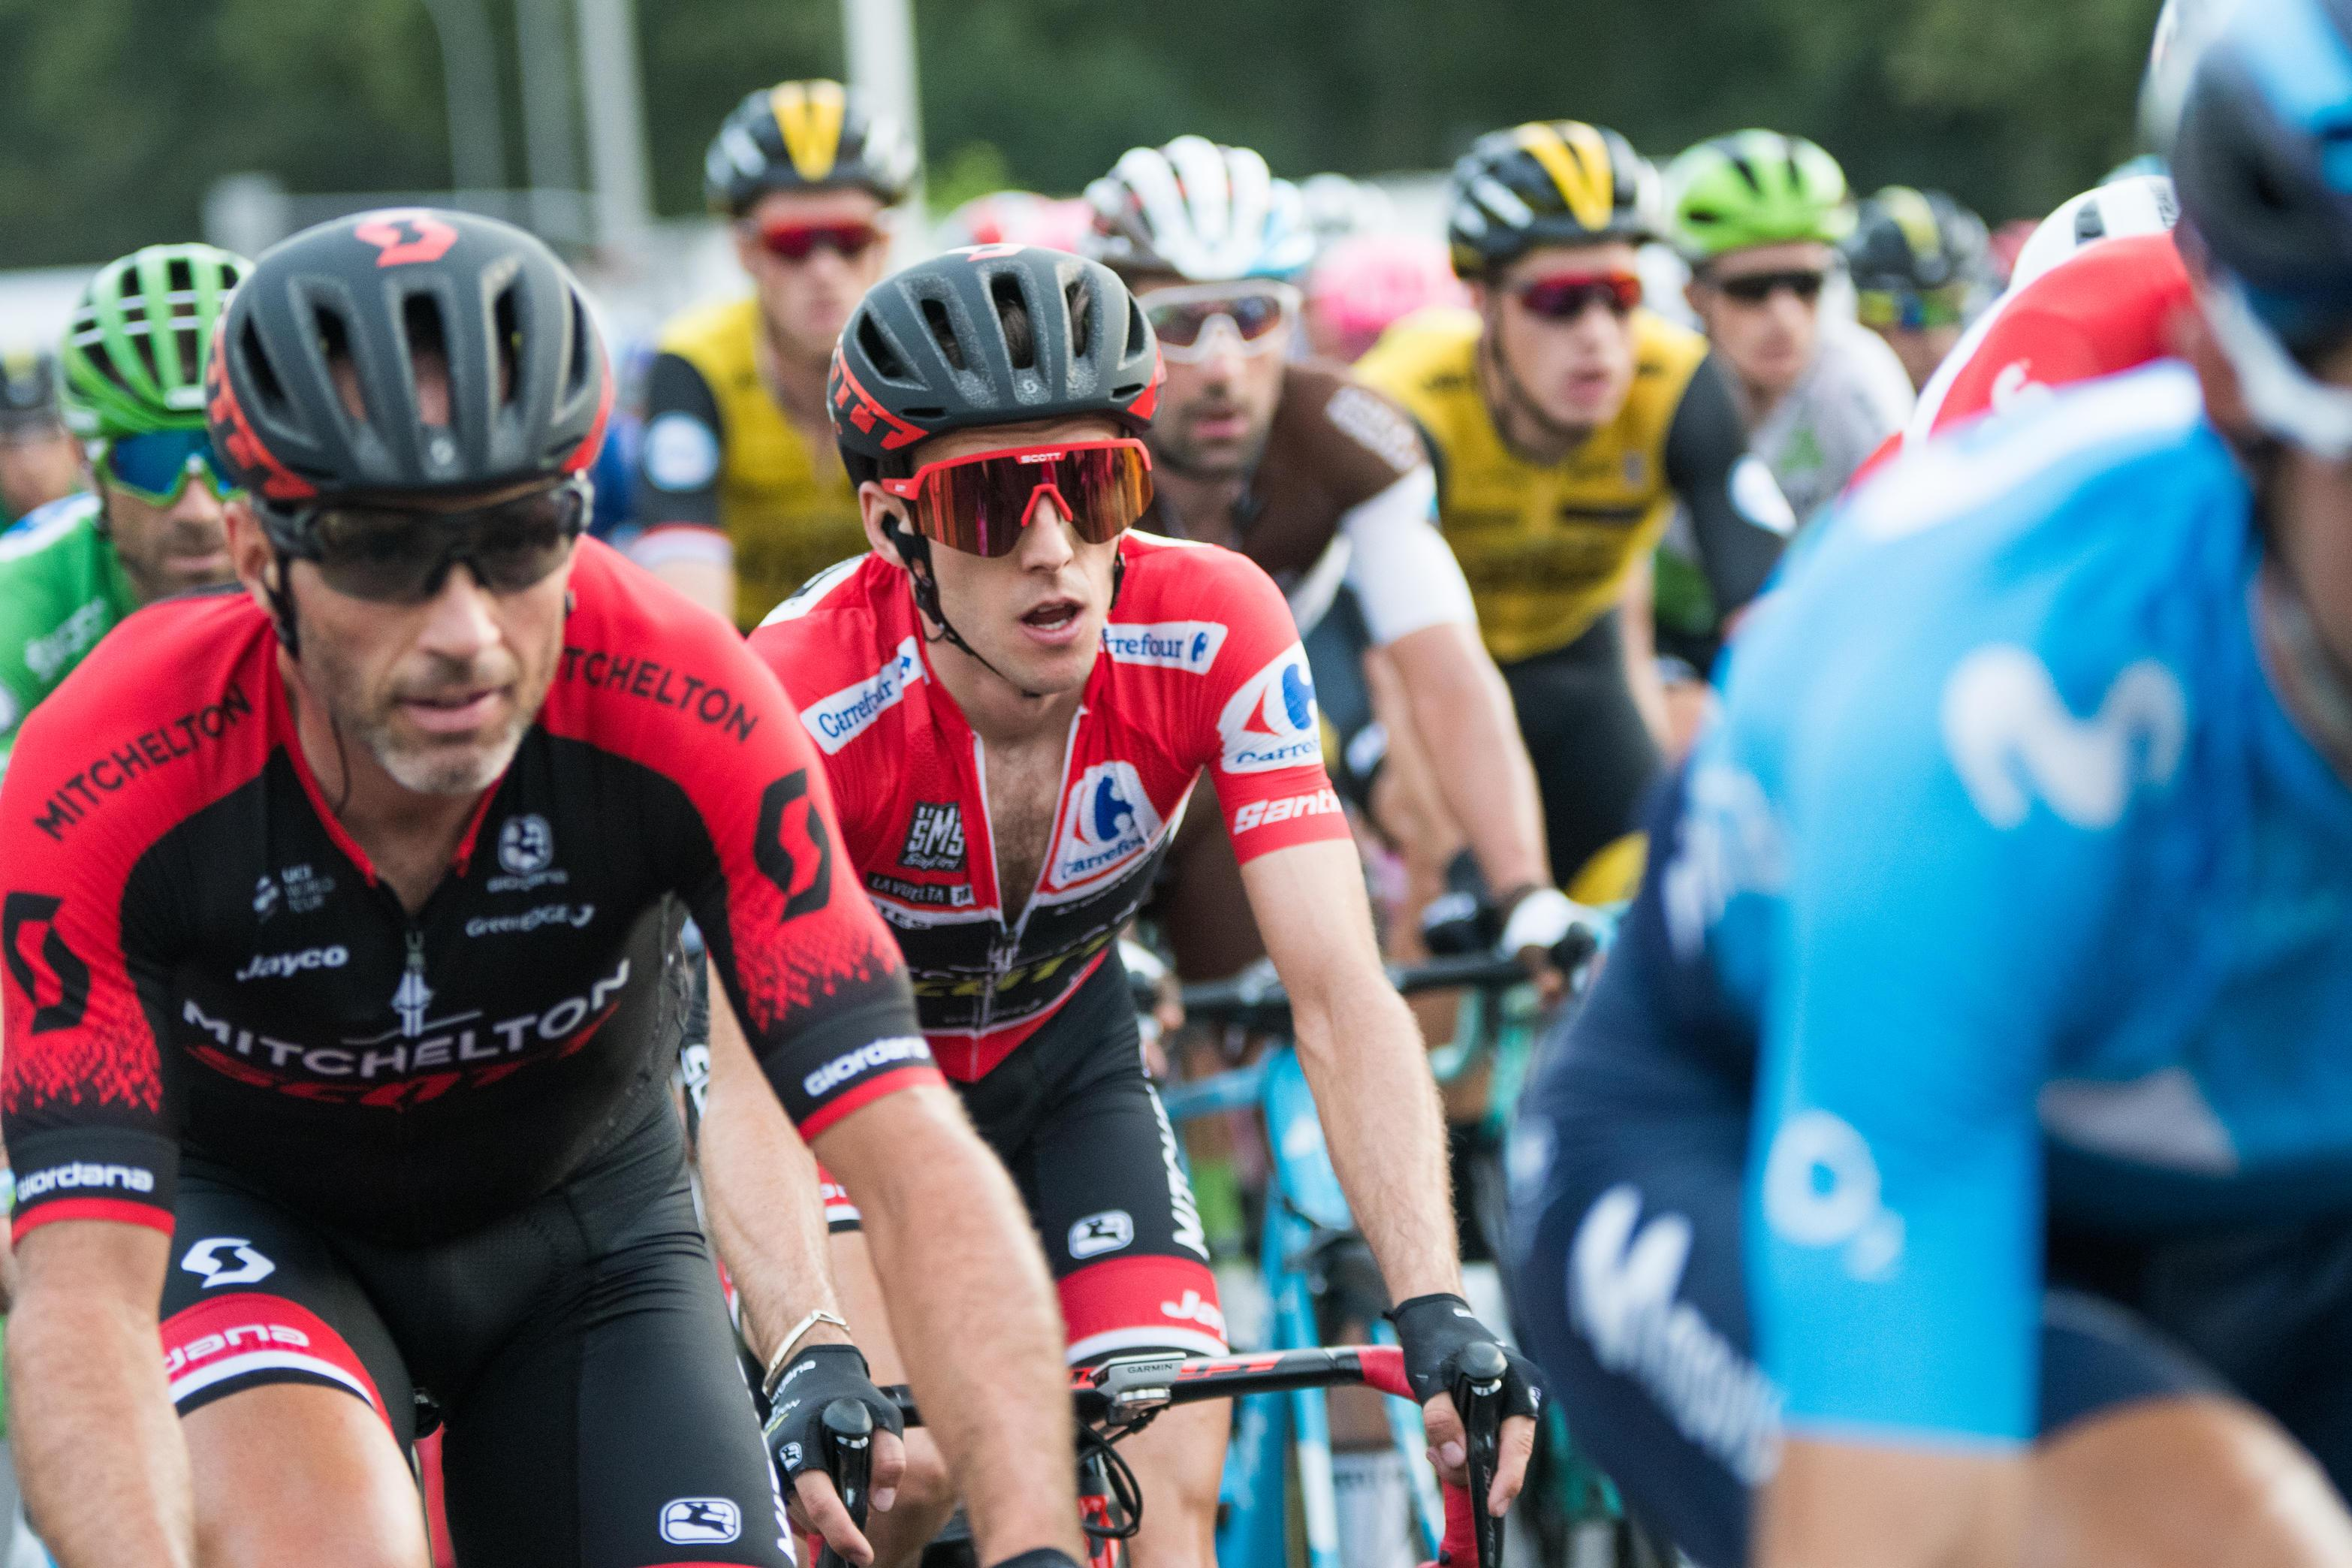 Simon Yates rolls home victorious in the Red Jersey after winning the Vuelta a Espana